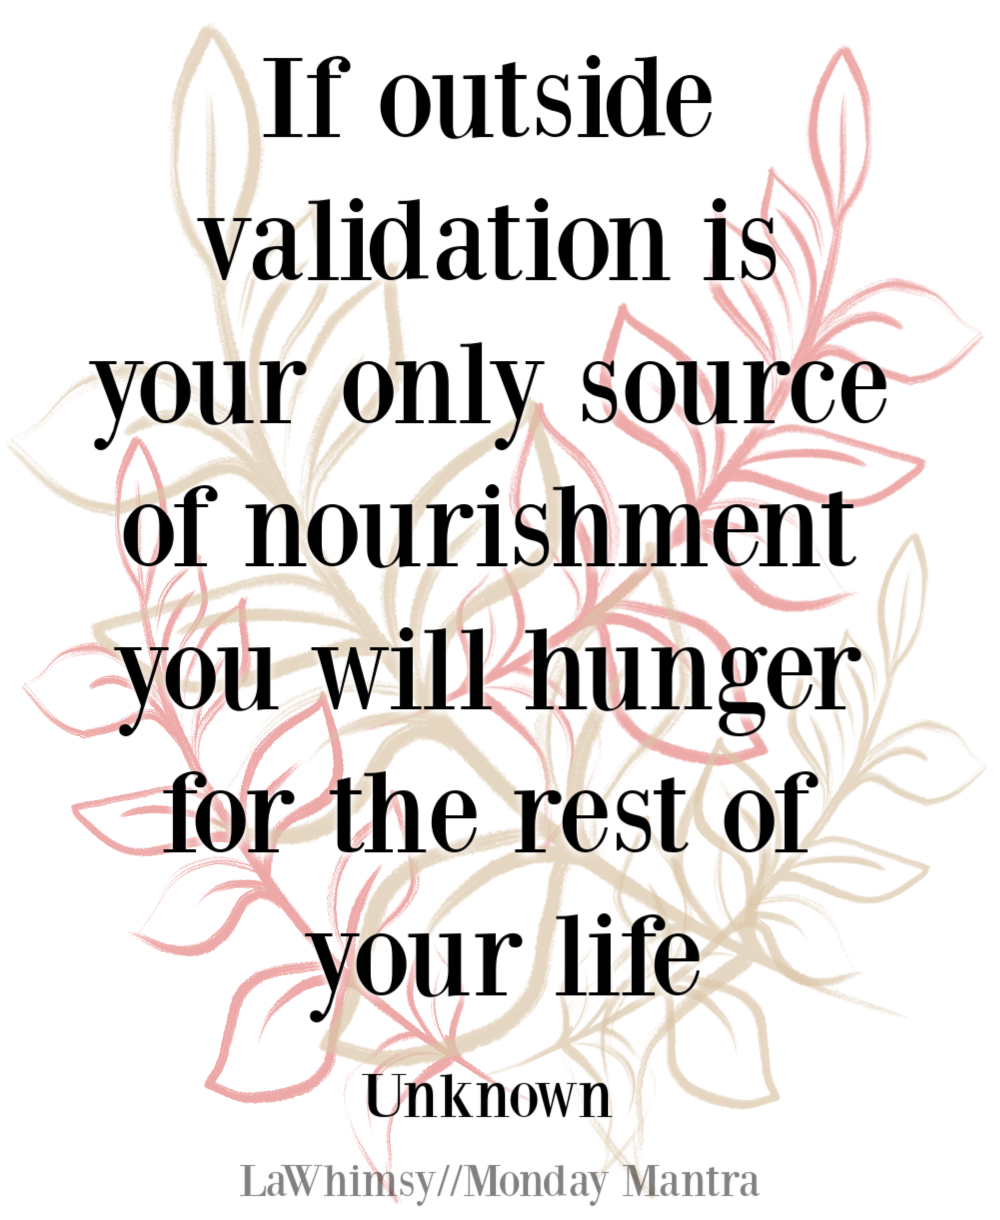 If outside validation is your only source of nourishment you will hunger for the rest of your life unkown quote Monday Mantra 280 via LaWhimsy